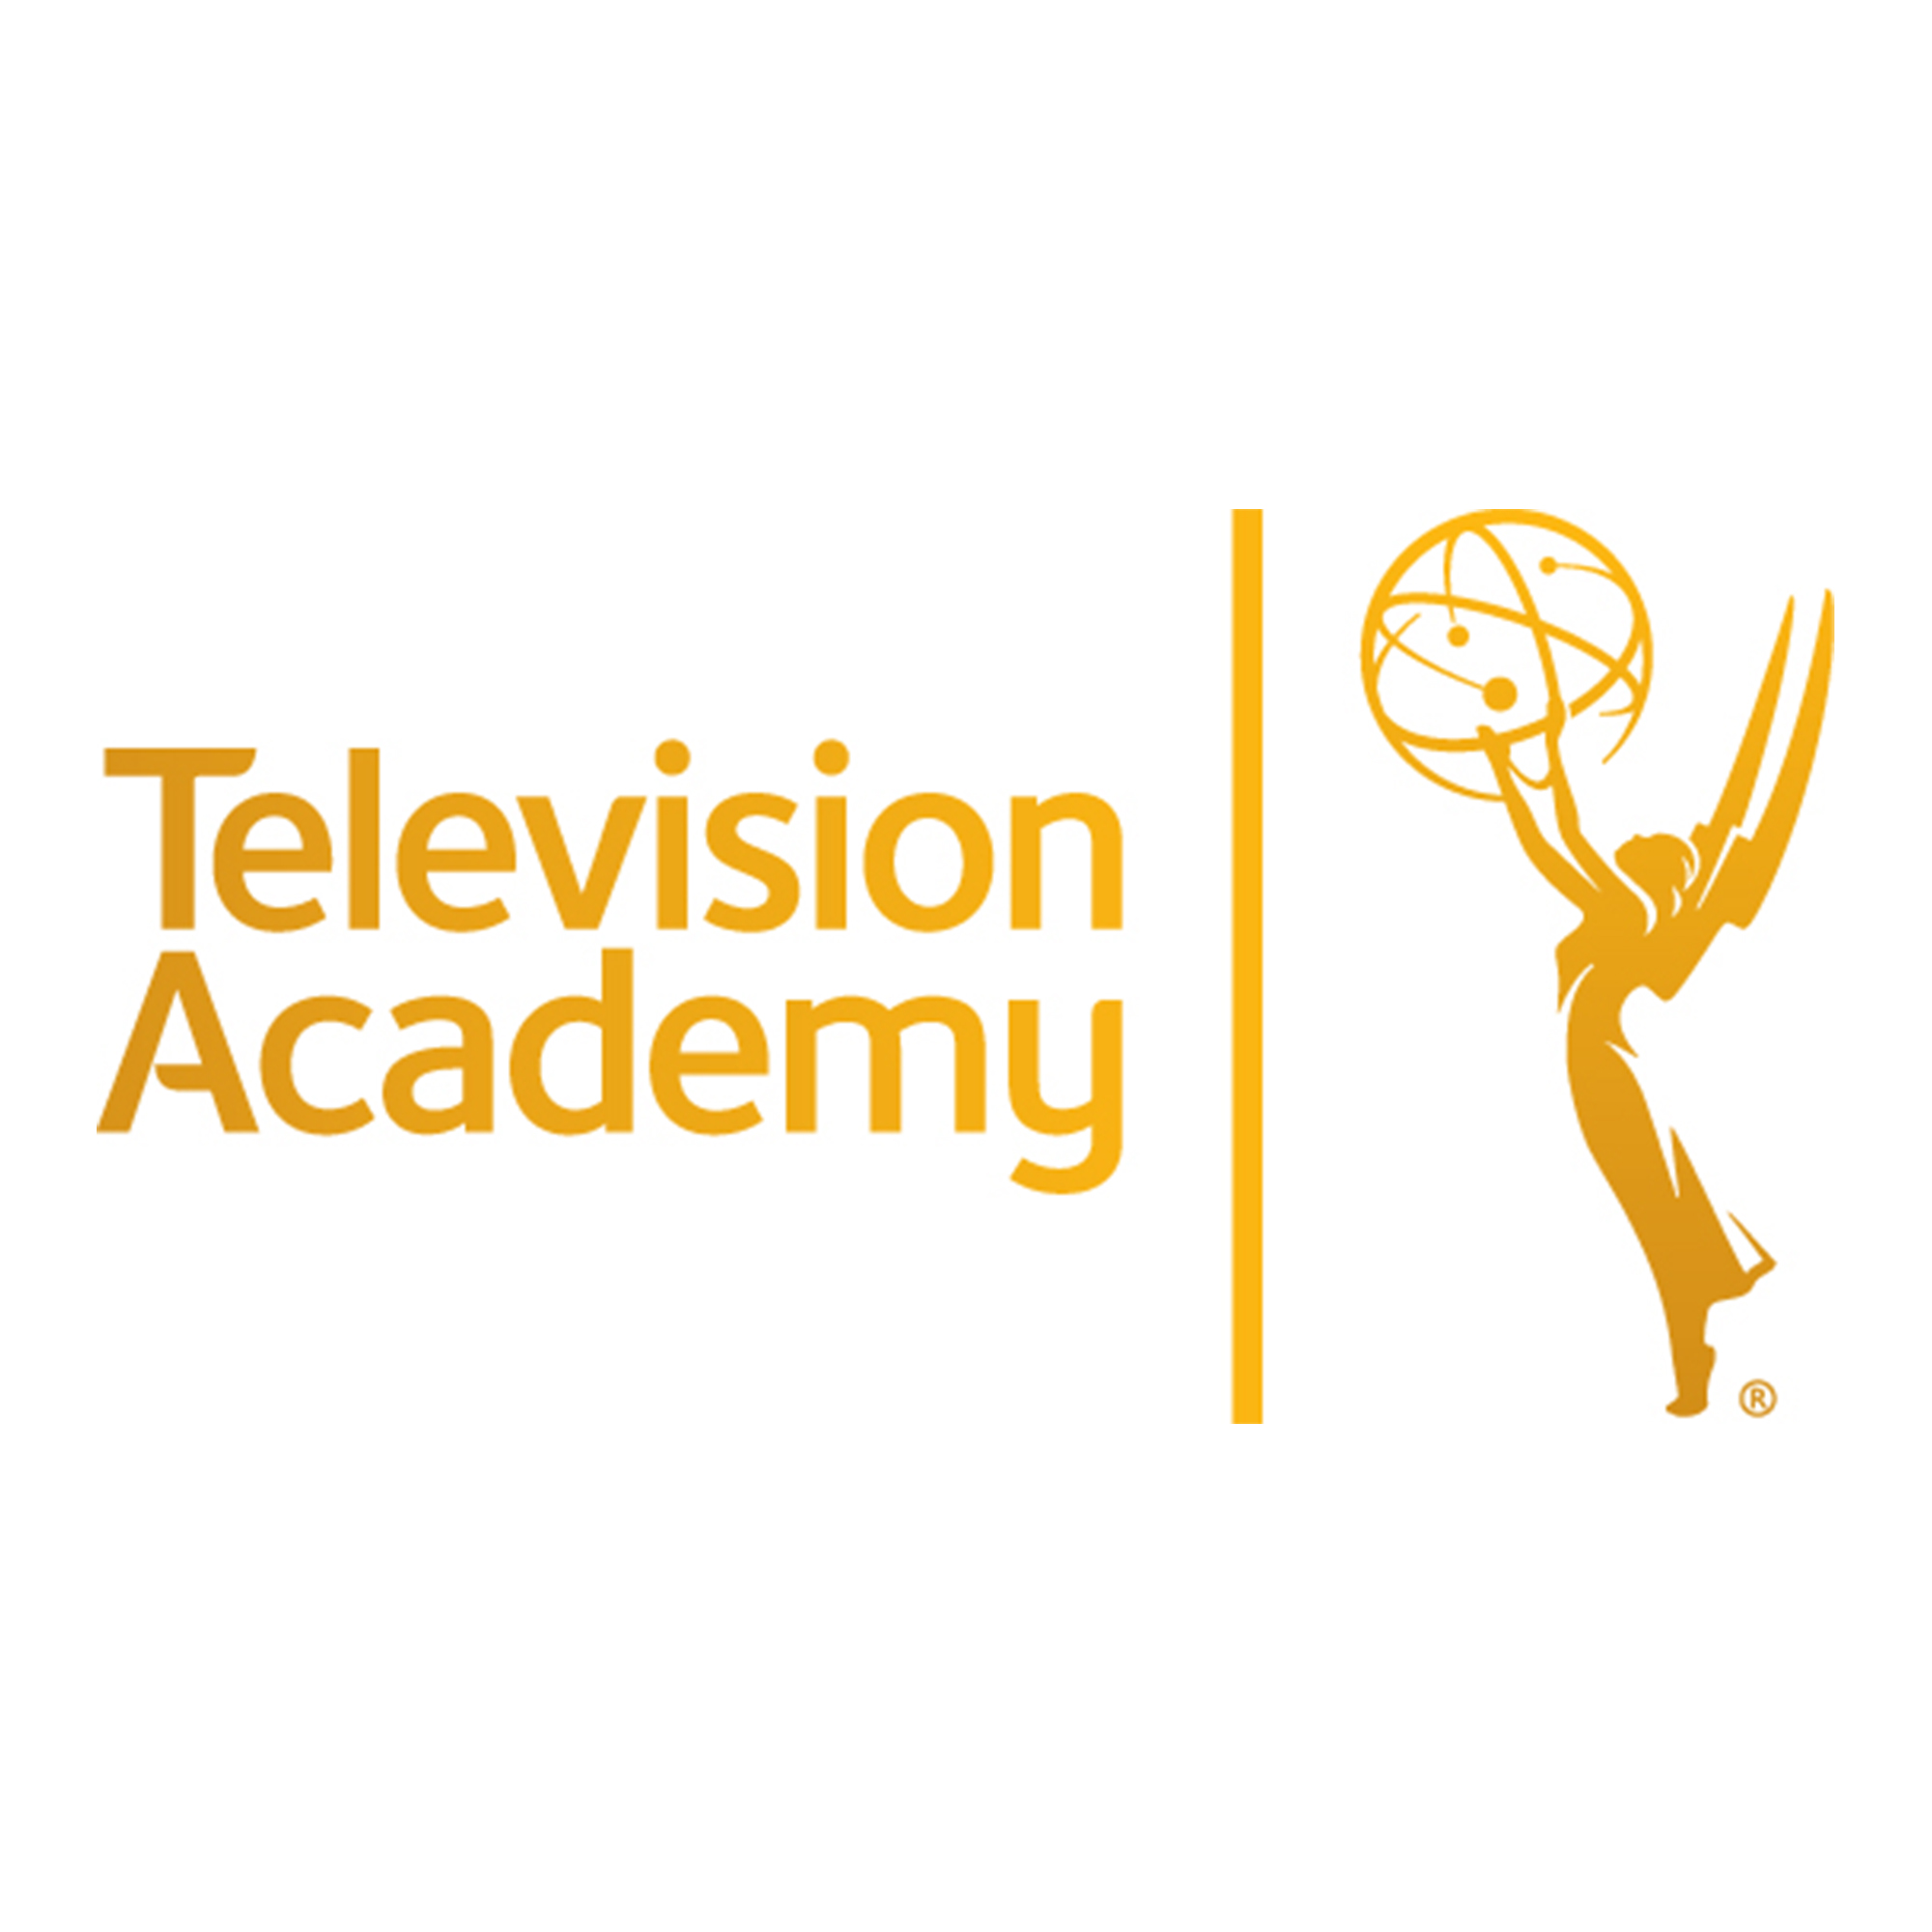 EOAD-Clients-Television Academy.jpg